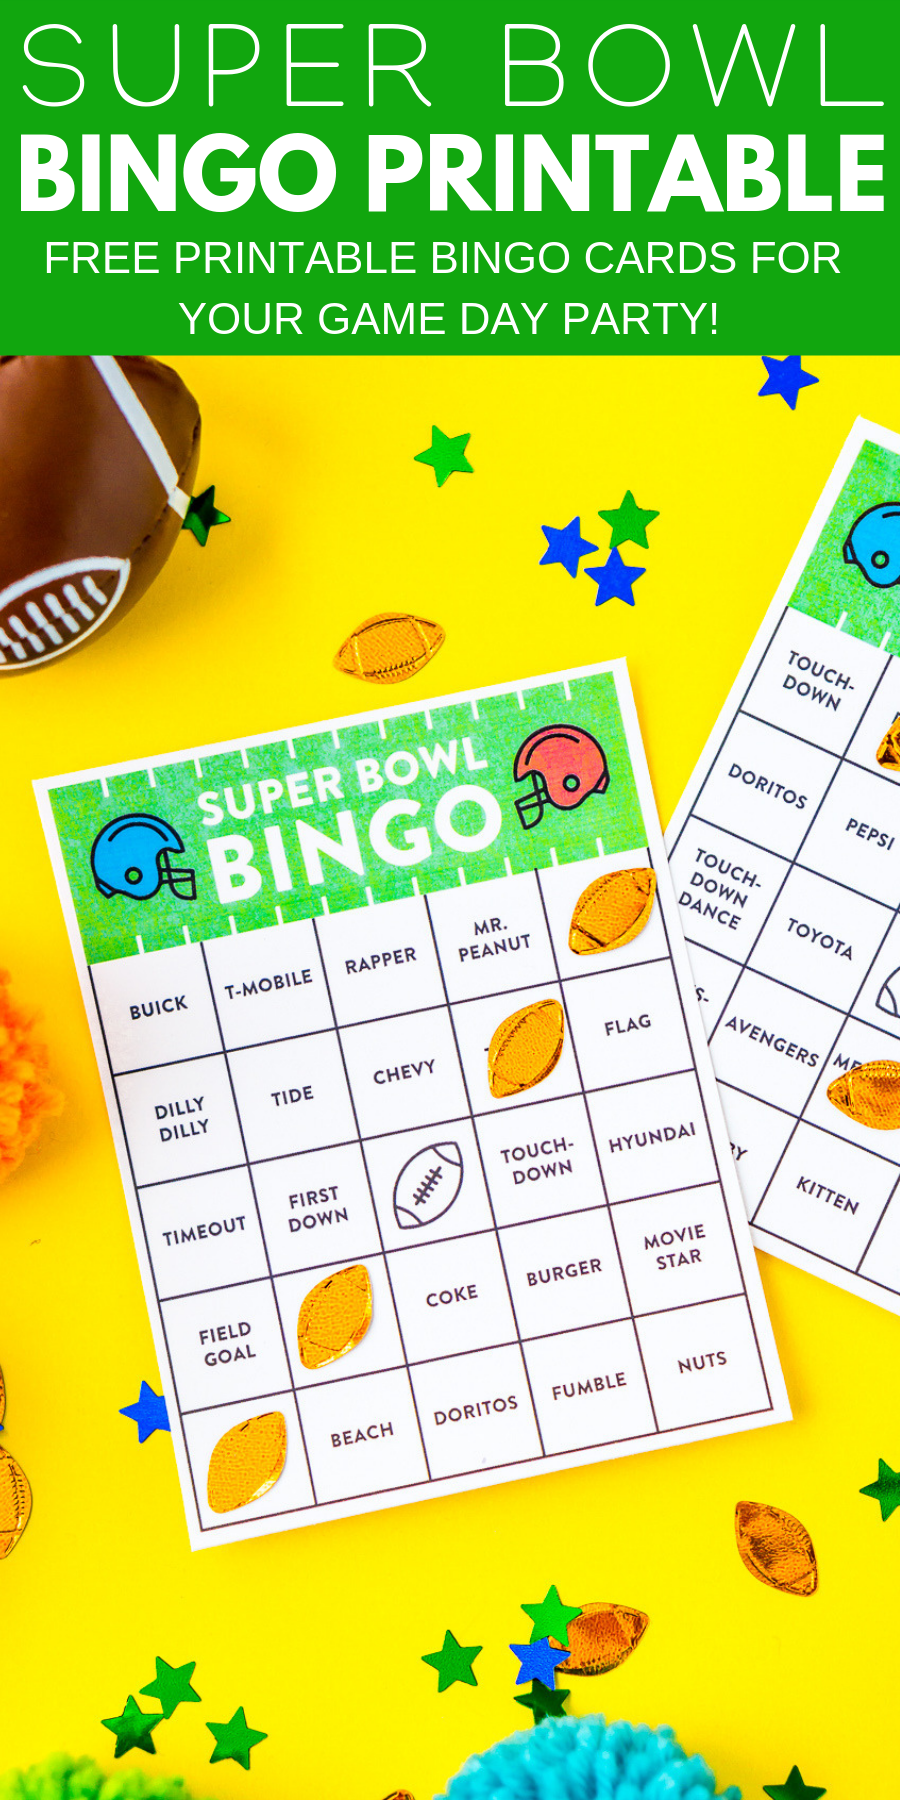 These Free Printable Super Bowl Bingo Cards are a fun way to add even more entertainment to your party, 16 different bingo cards that are great for all ages!